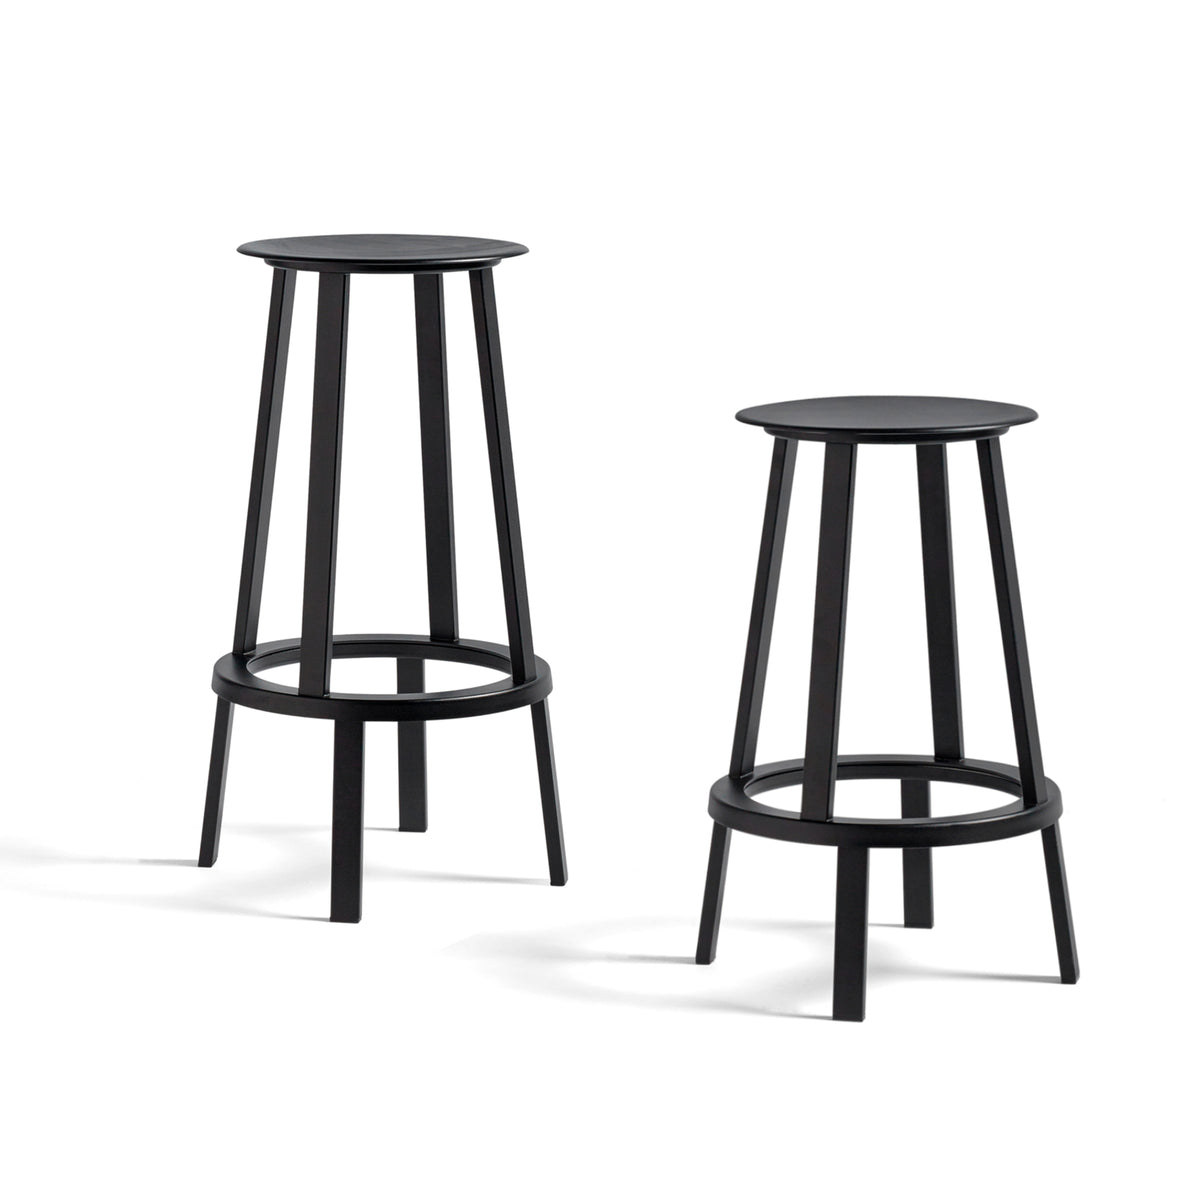 HAY Office Revolver Bar Stool Seating